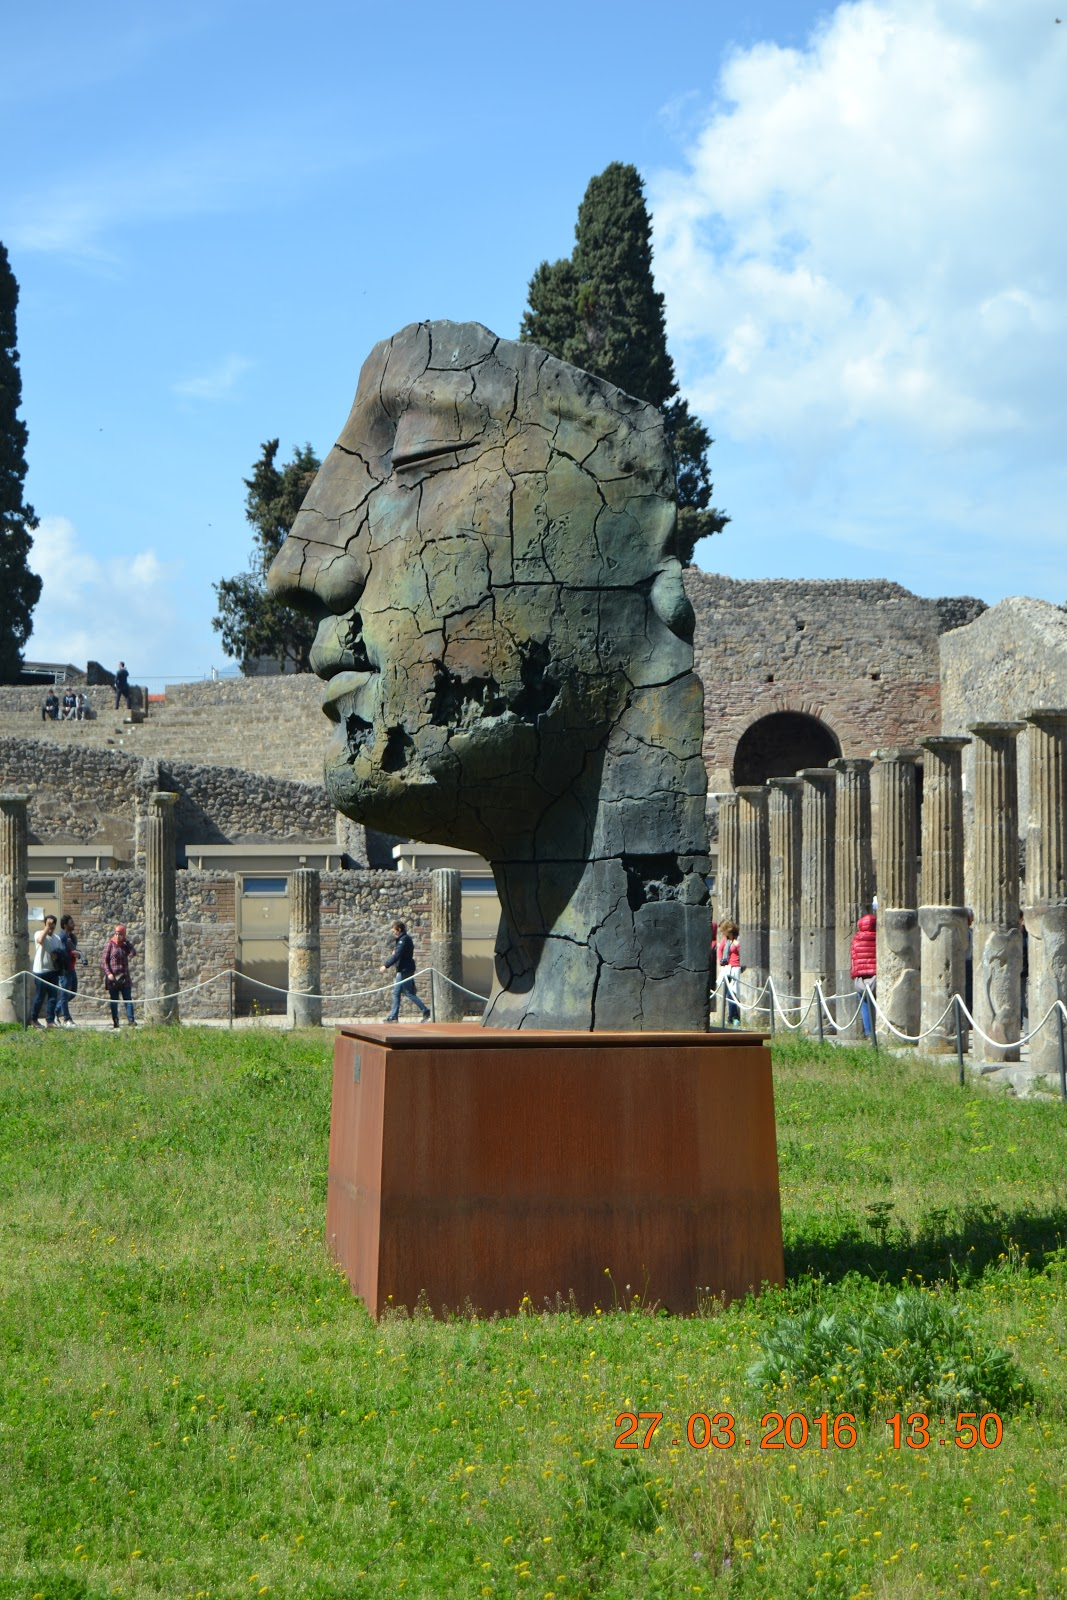 Contemporary Arts placed in the Pompeii Forum